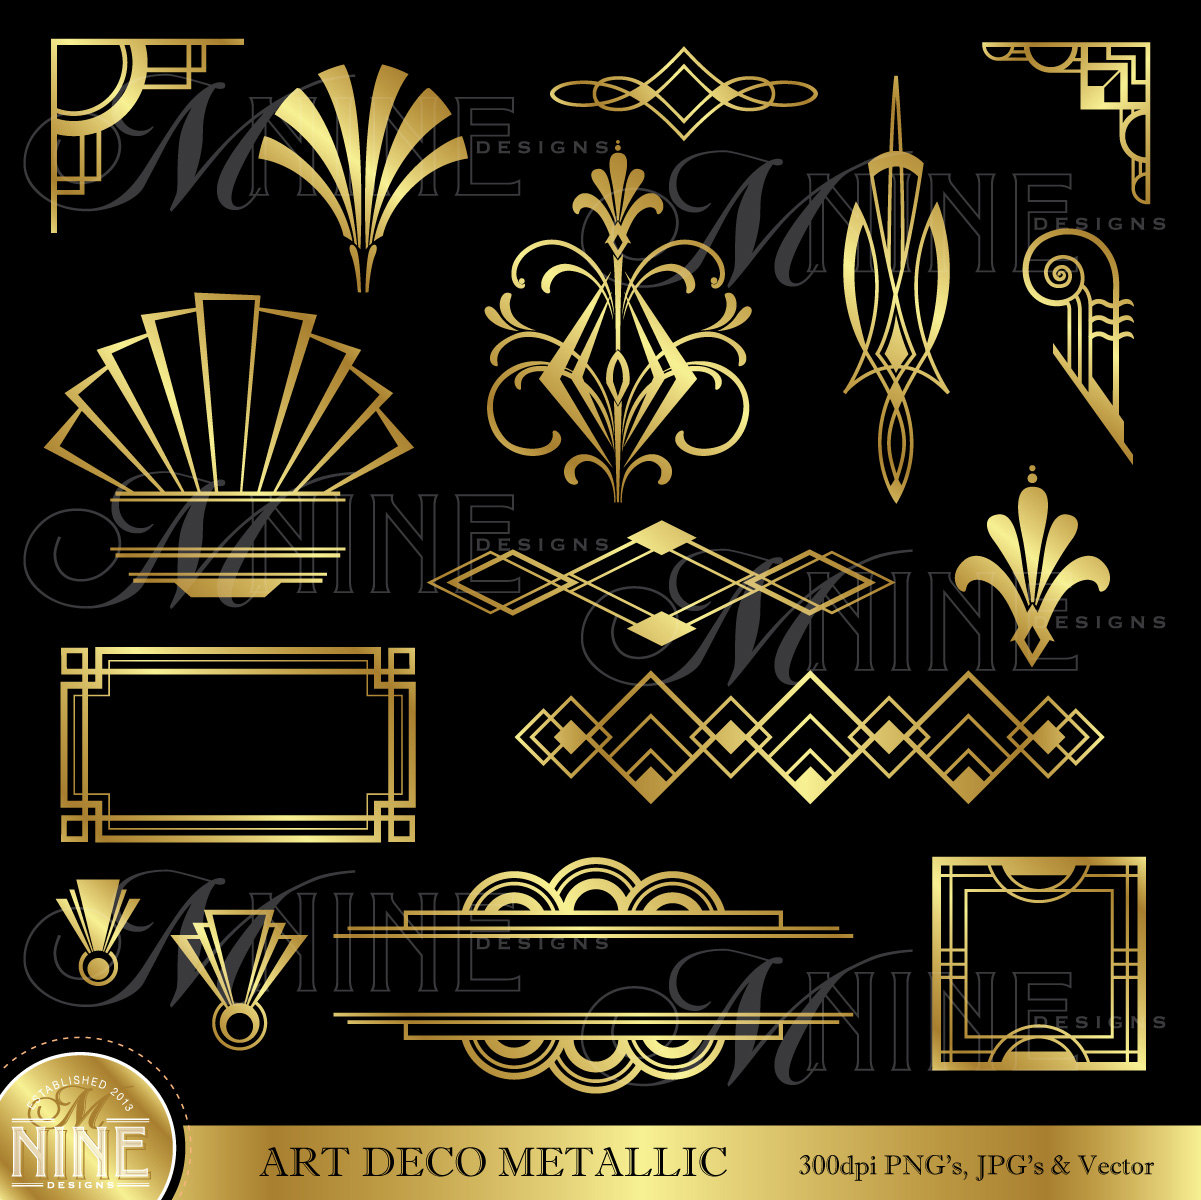 ART DECO Gold Metallic Style Design Elements by MNINEDESIGNS.